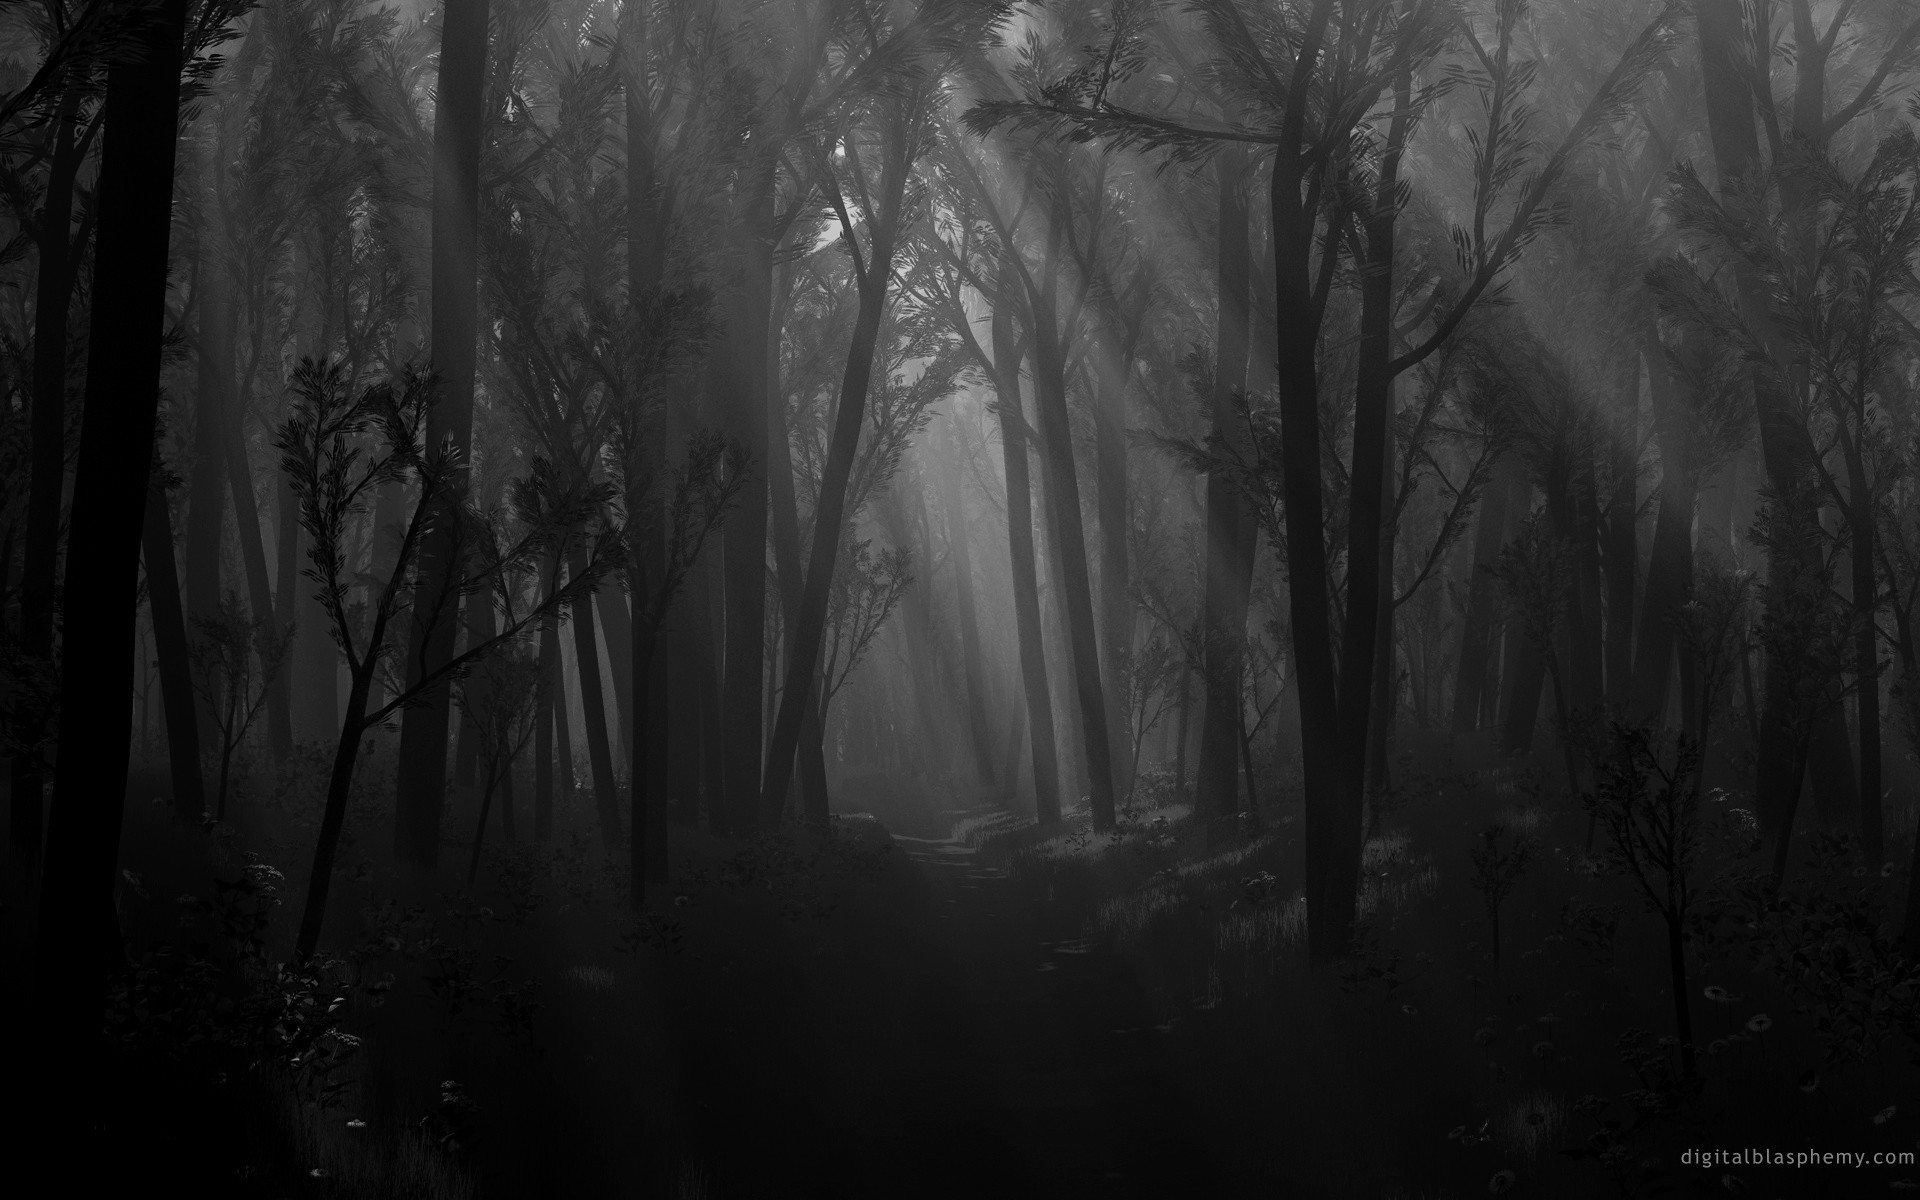 1920x1200 Dark Black and White Wallpaper | ... in the dark forest via garganta he